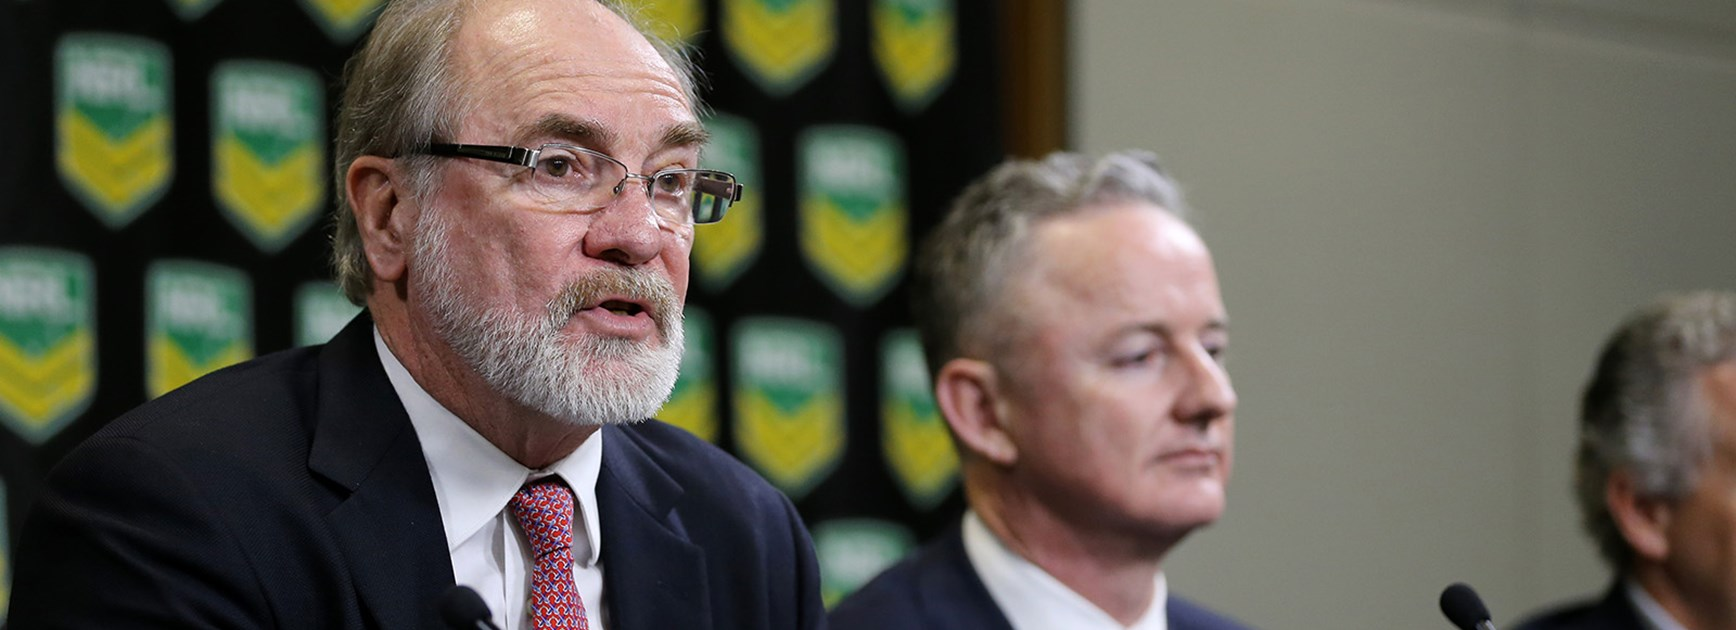 ustralian Rugby League Commission Chairman John Grant announces the new tv deal worth over 1.8 billion dollars.